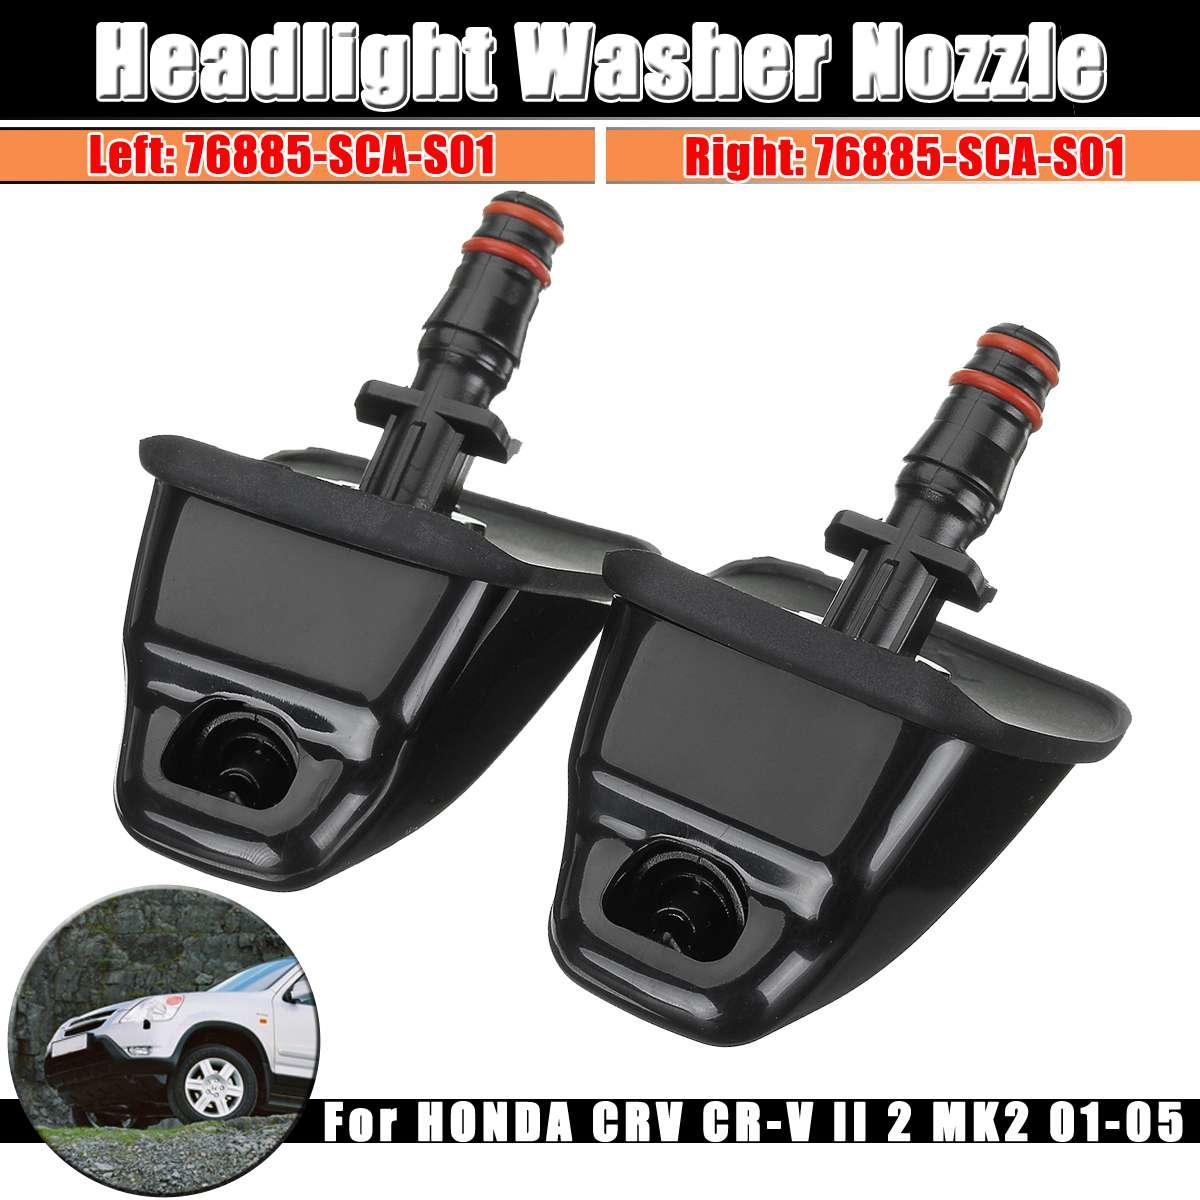 Headlight Washer Headlamp-Sprayer Cr-V-Ii CRV 2003 2004 2002 2005 HONDA Nozzle for 1pcs title=